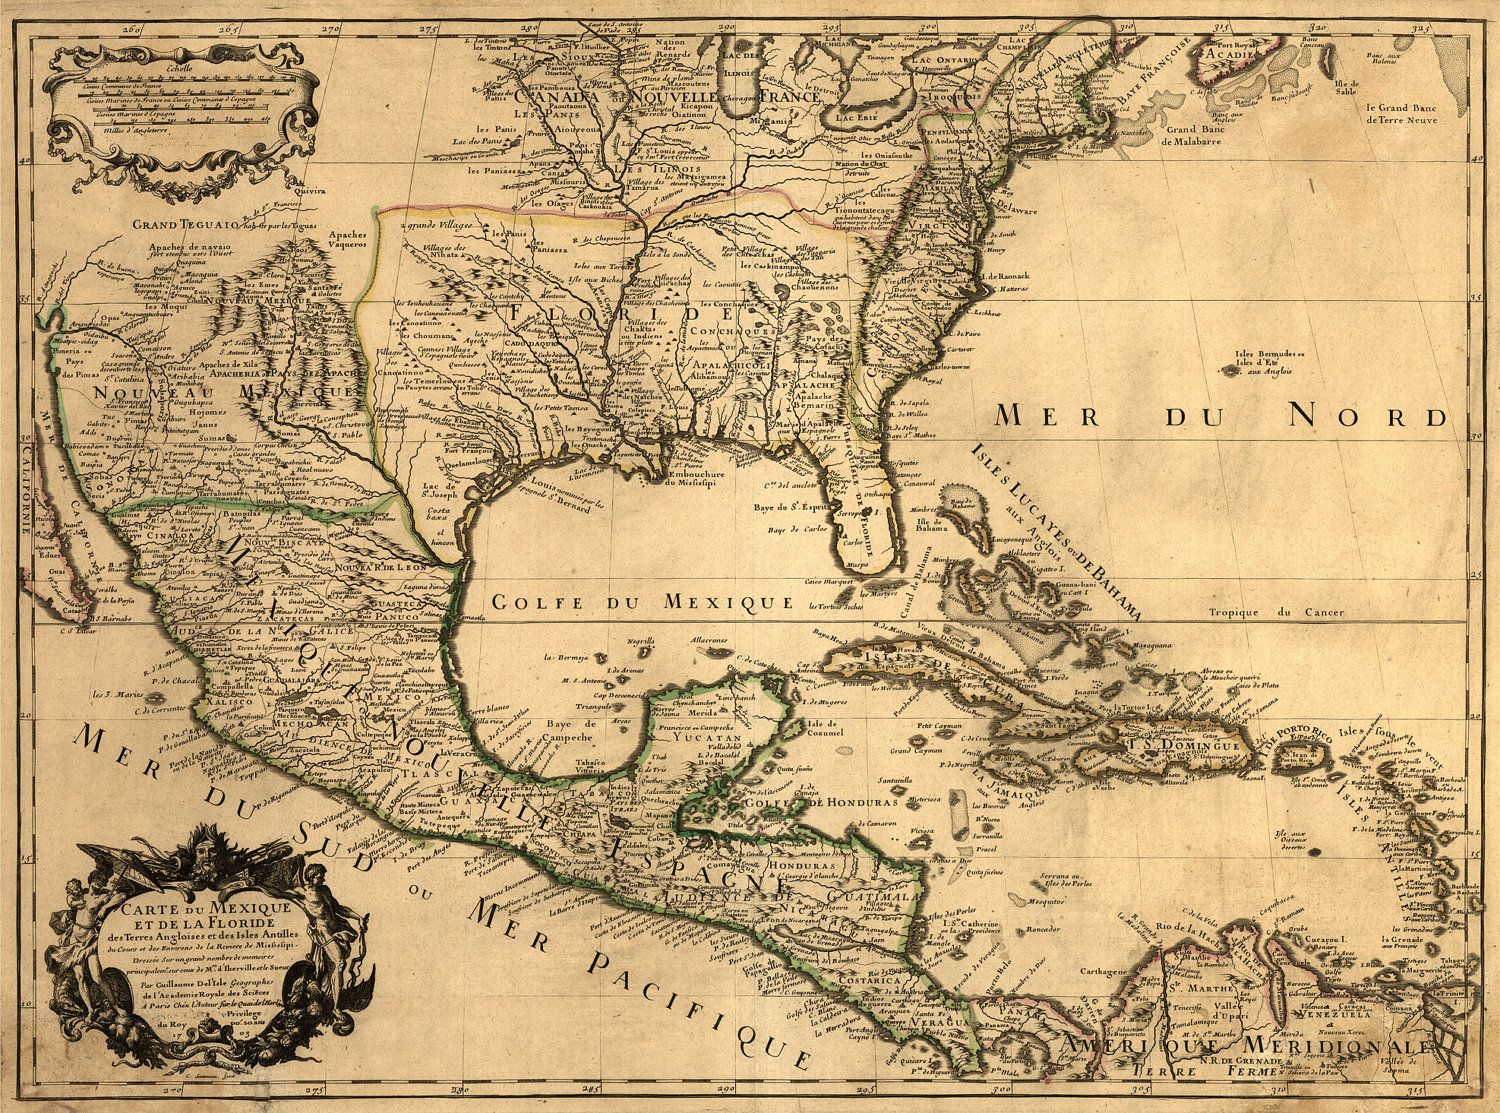 1703 us map nice map 13x17 old america mexico gulf unique wall decor 1680 via etsy